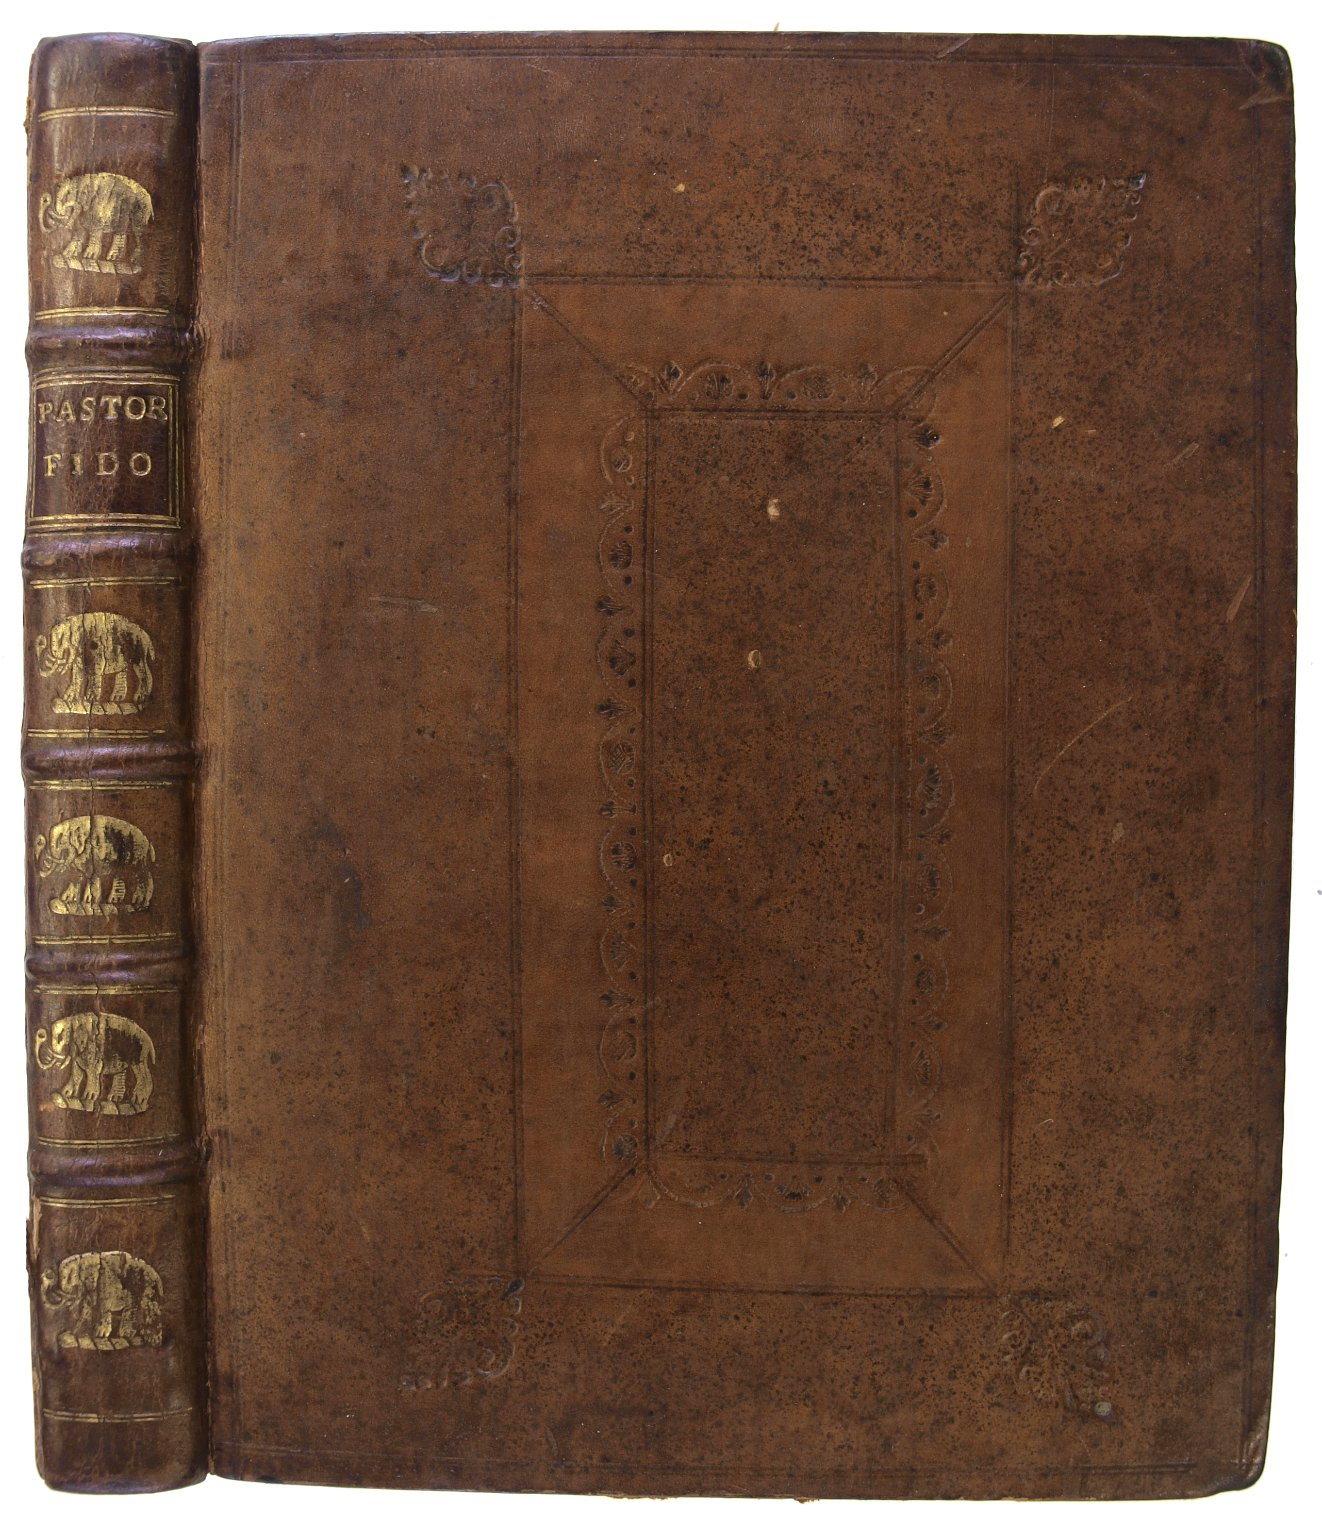 Front cover and spine, G2175 copy 2.